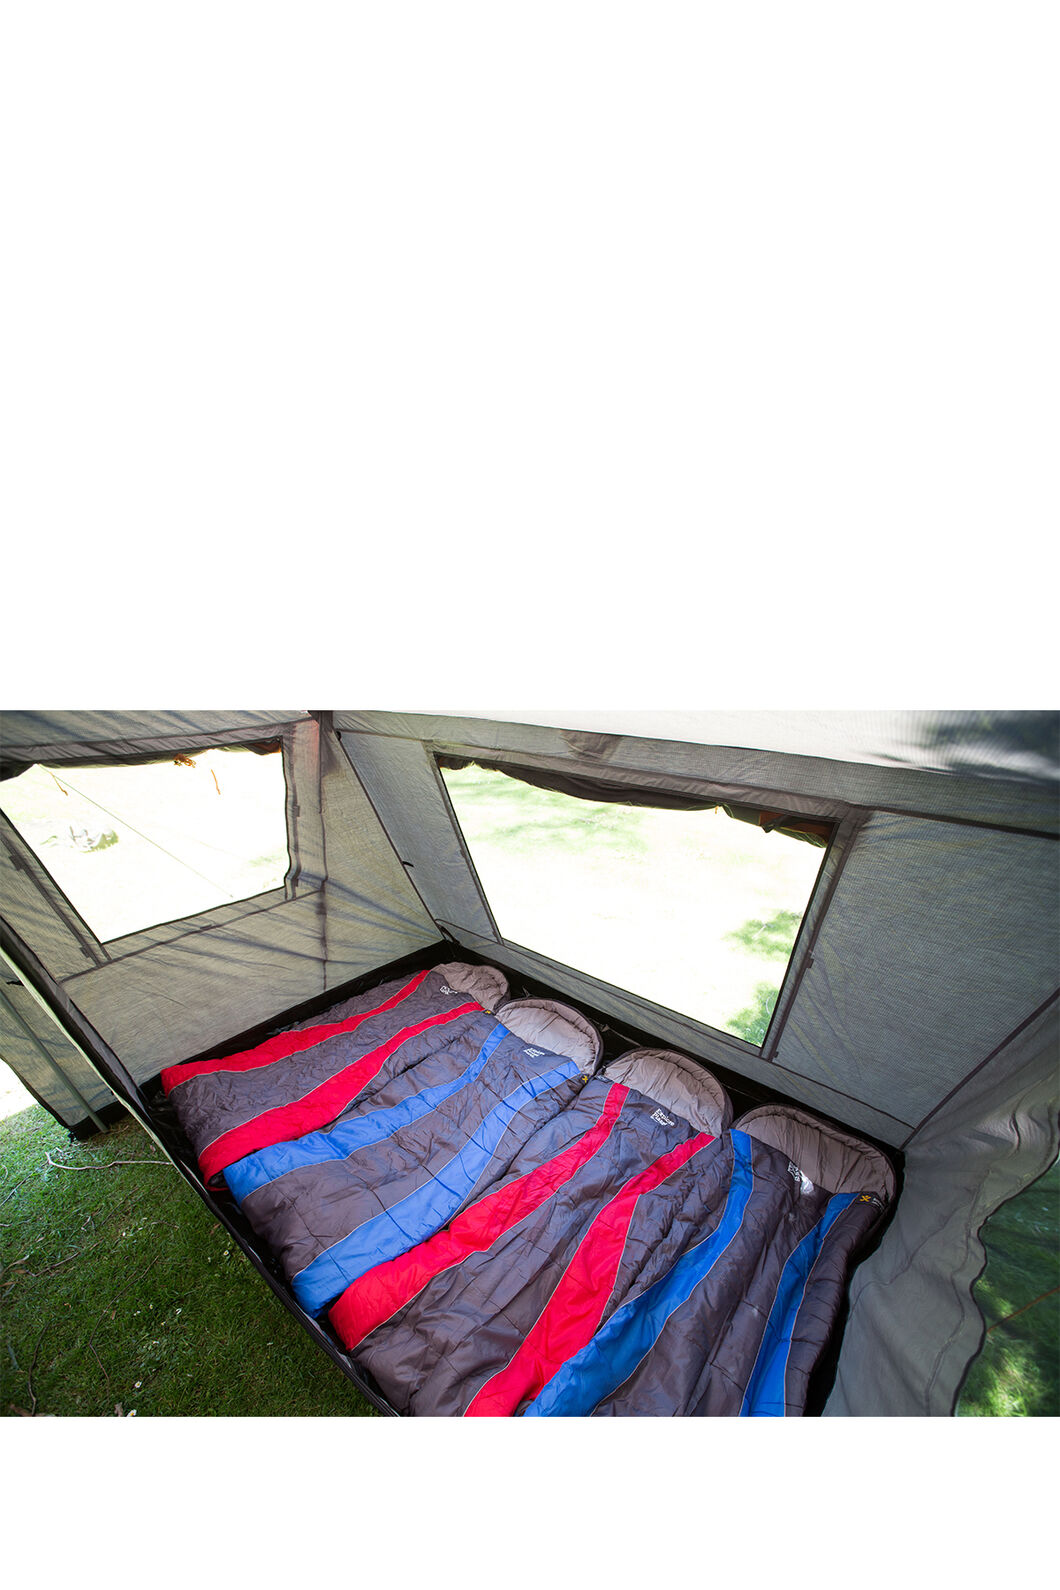 Explore Planet Earth Speedy Earth 6 Person Hub Tent, None, hi-res